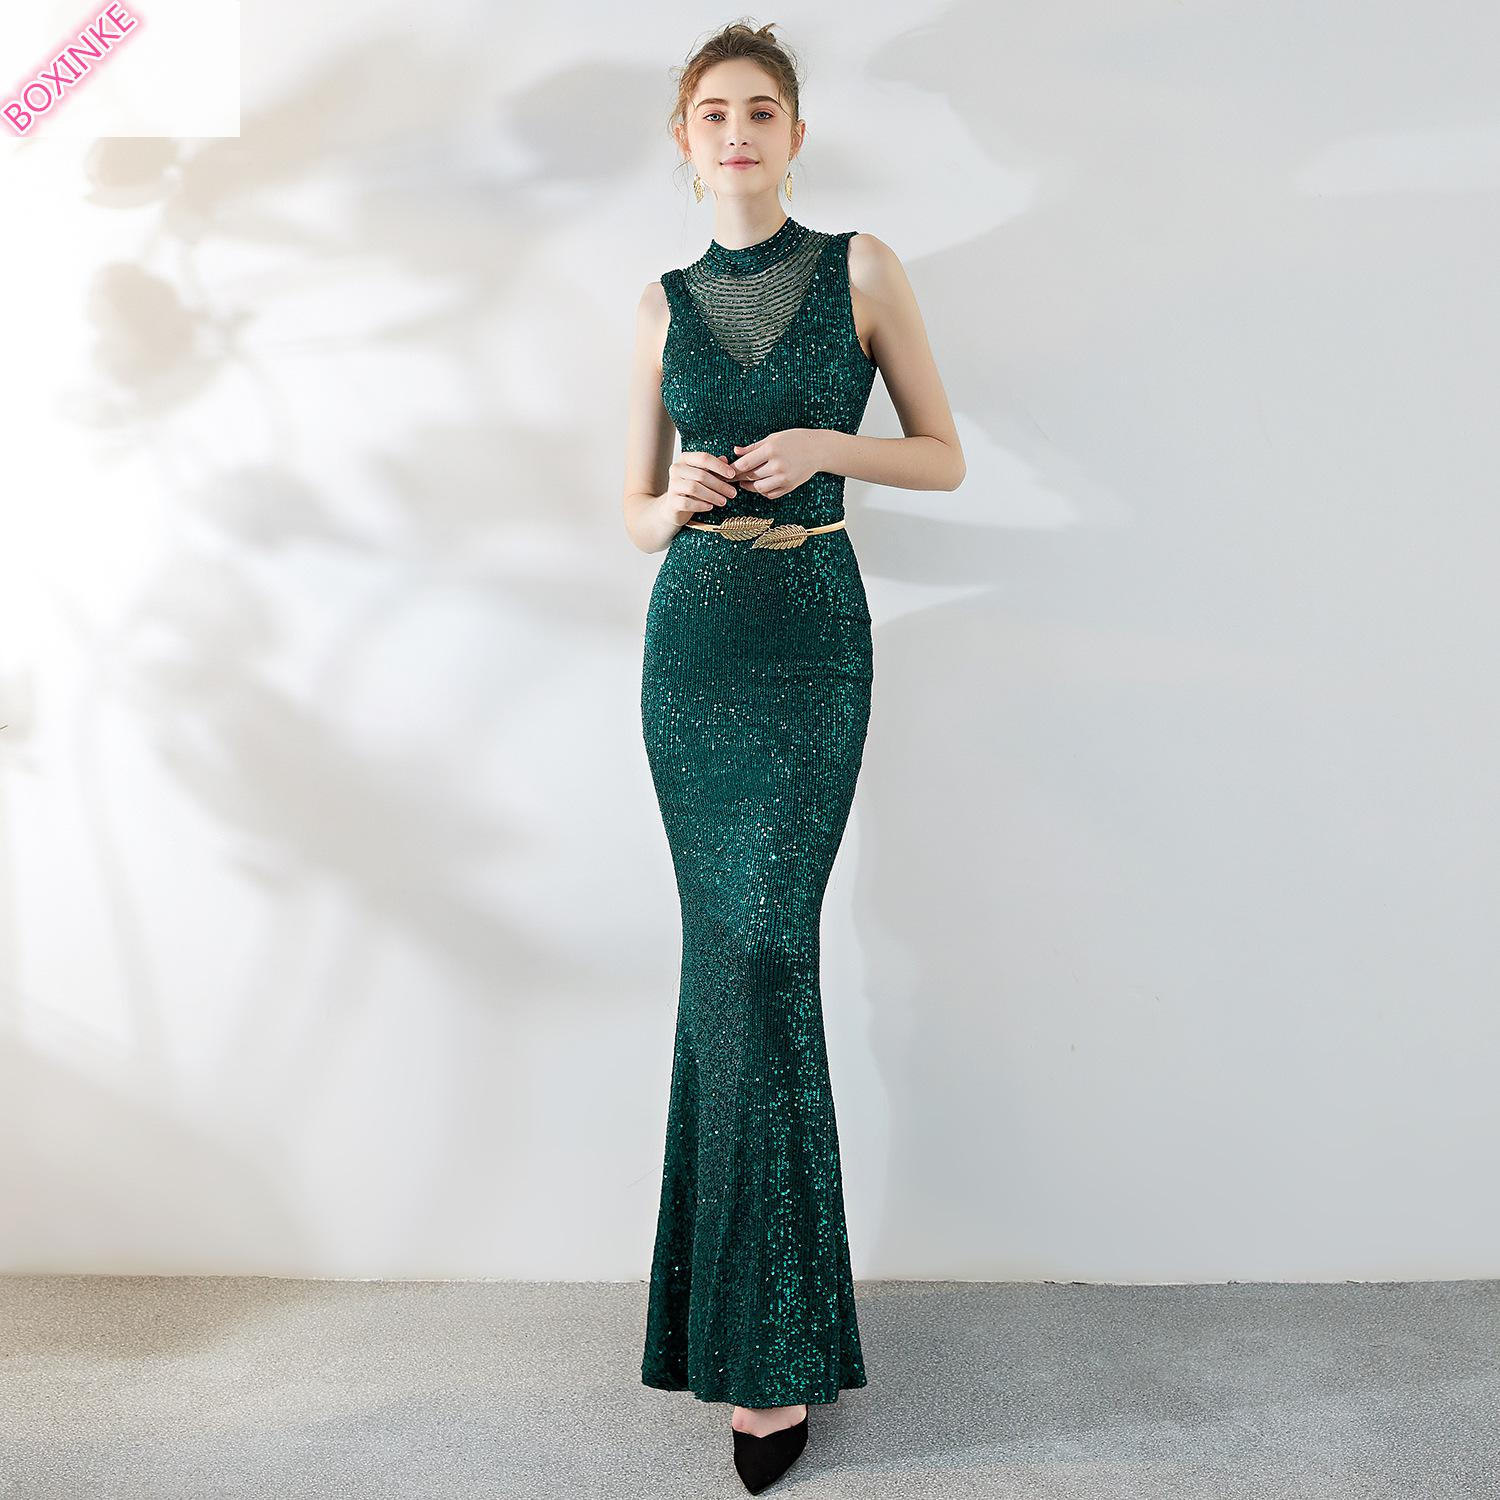 2019 Sale Mesh Women Dress Zanzea Plus Size Annual Meeting Of Hosts Slim Sexy Fishtail At The Noble Banquet New Dresses